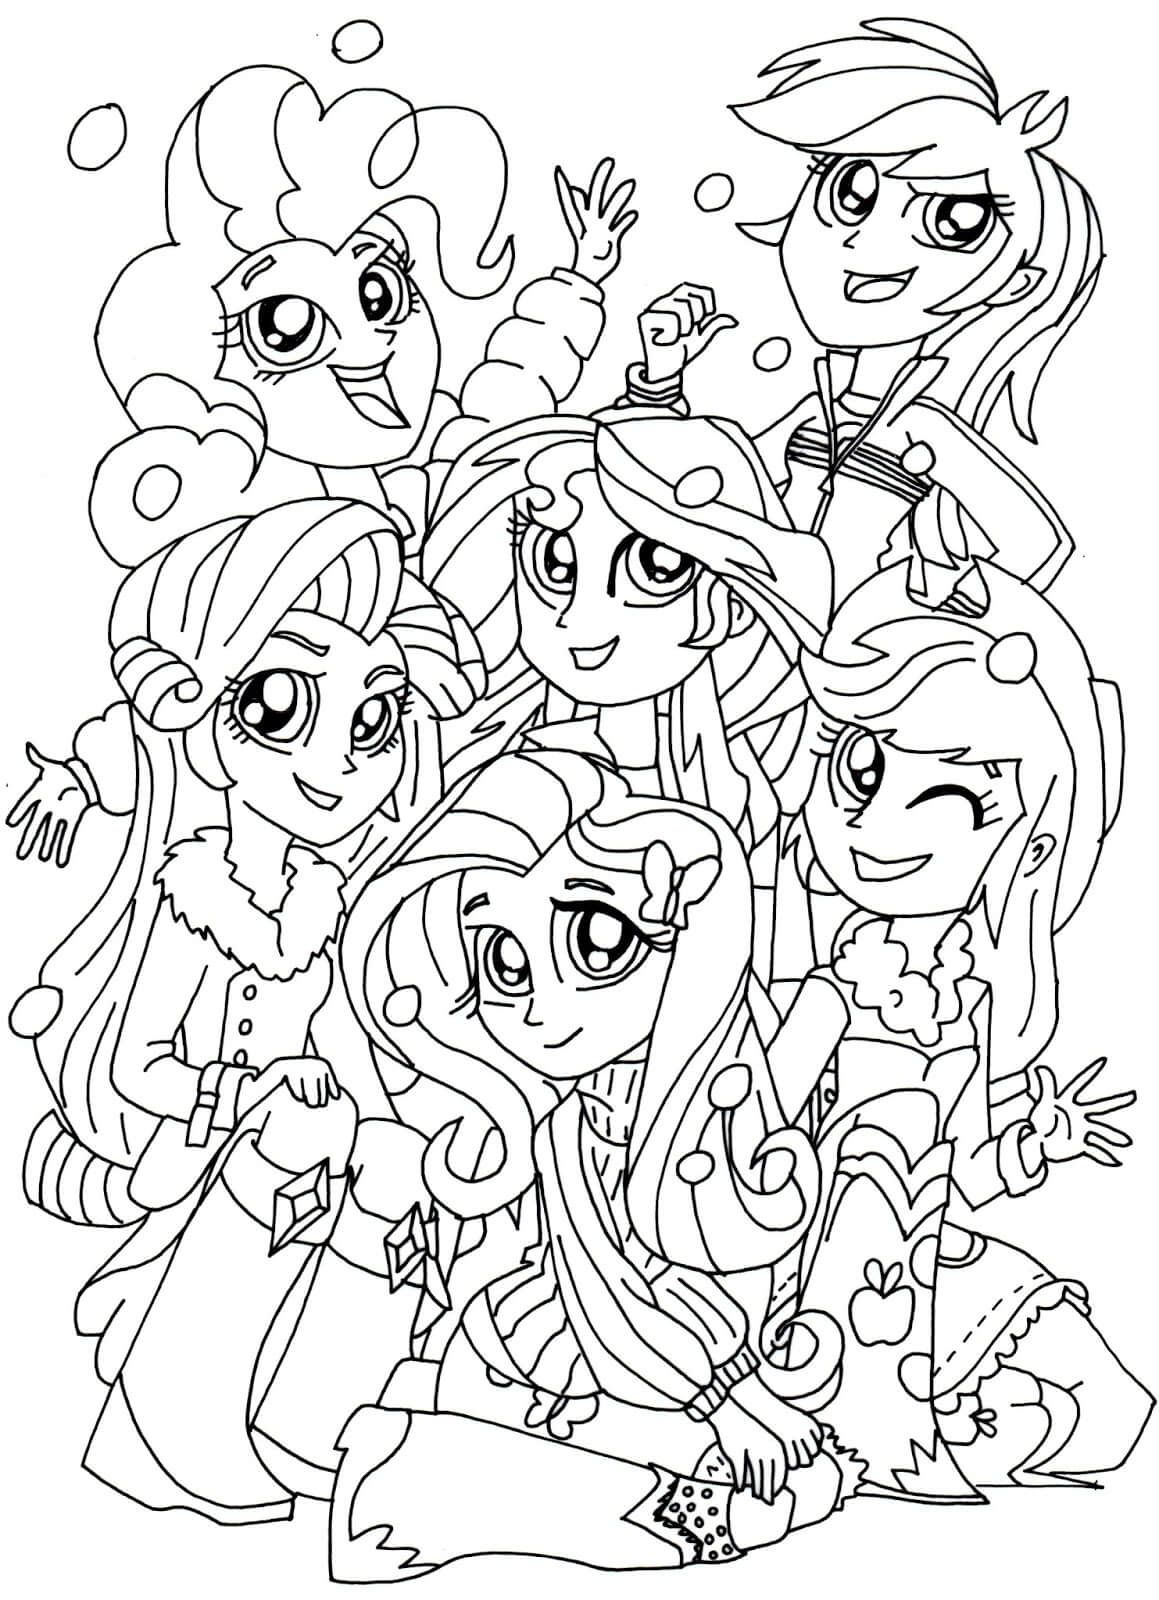 My Little Pony Equestria Girls Coloring Pages Equestria Girls